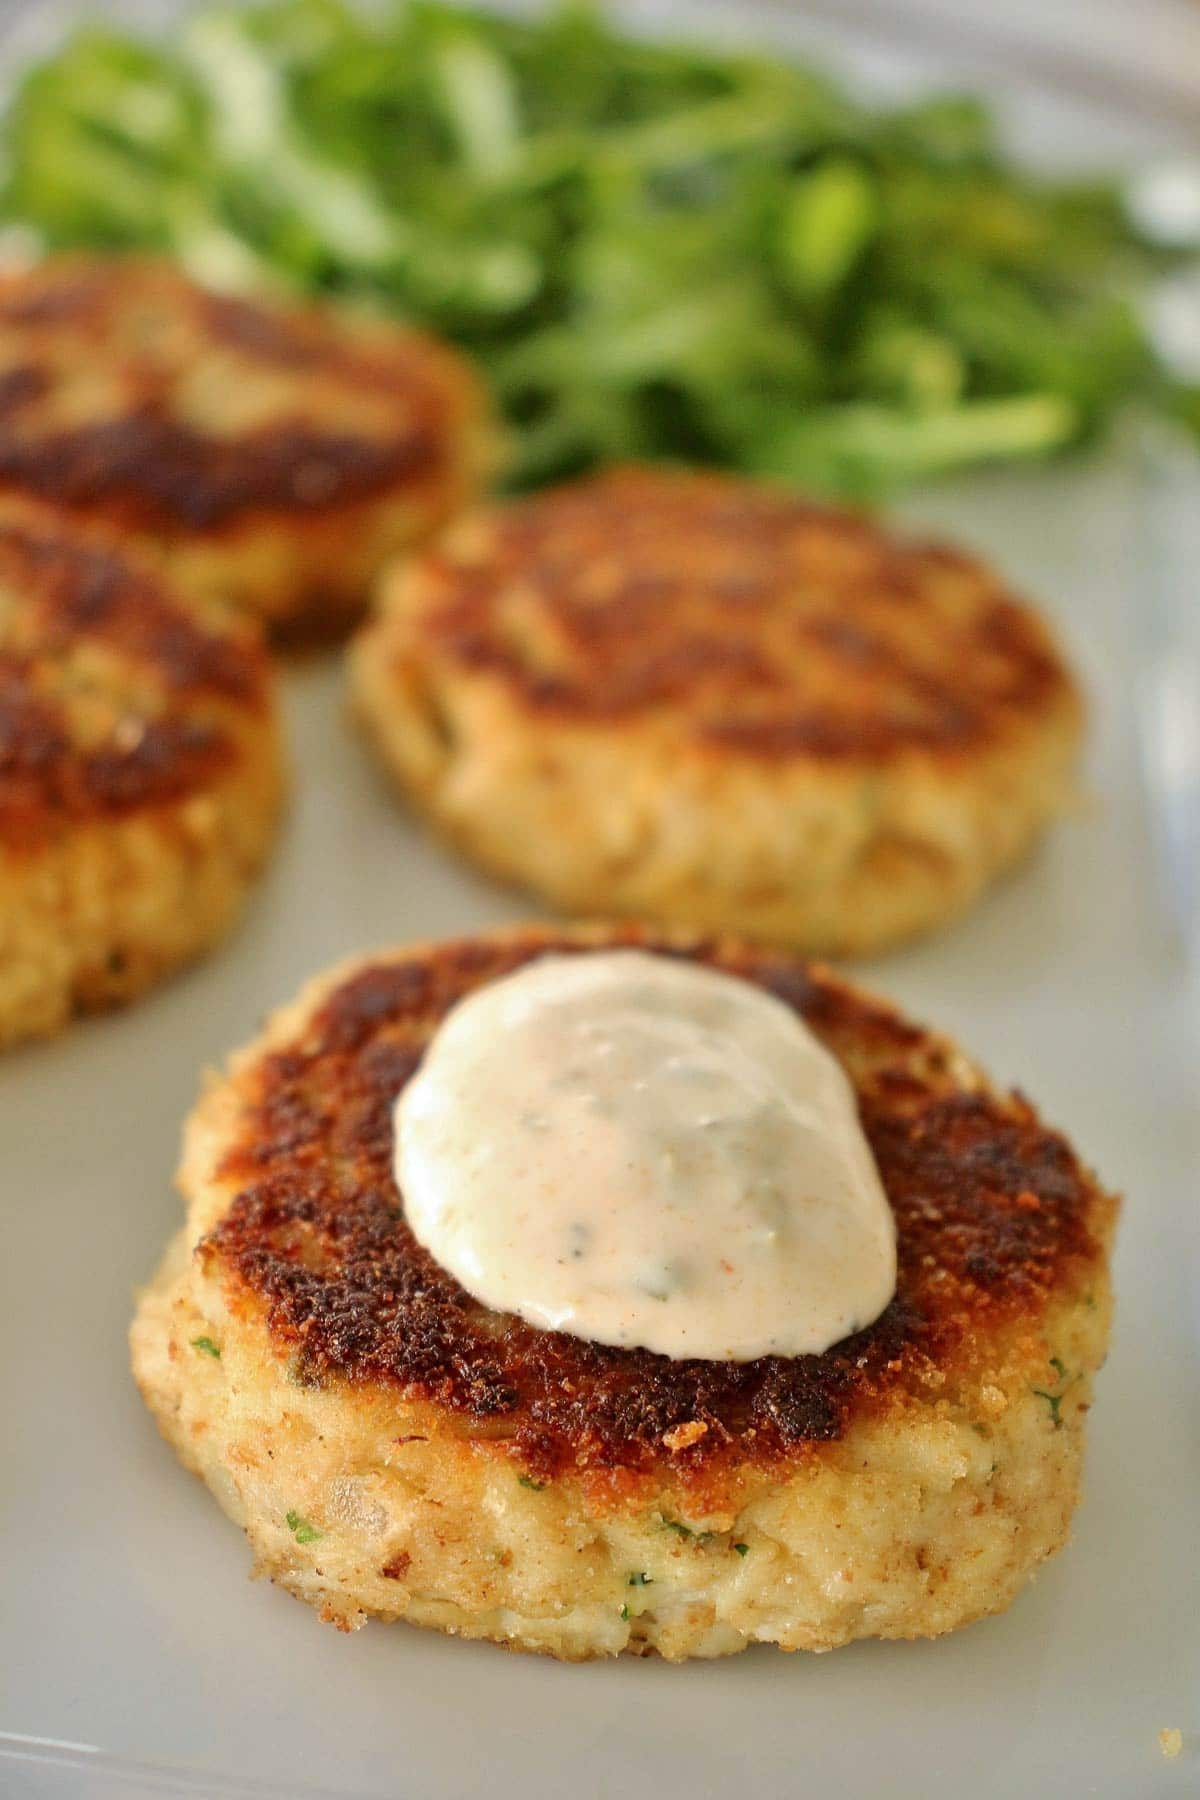 Four golden crab cakes on a white plate with a dollop of sauce on one.